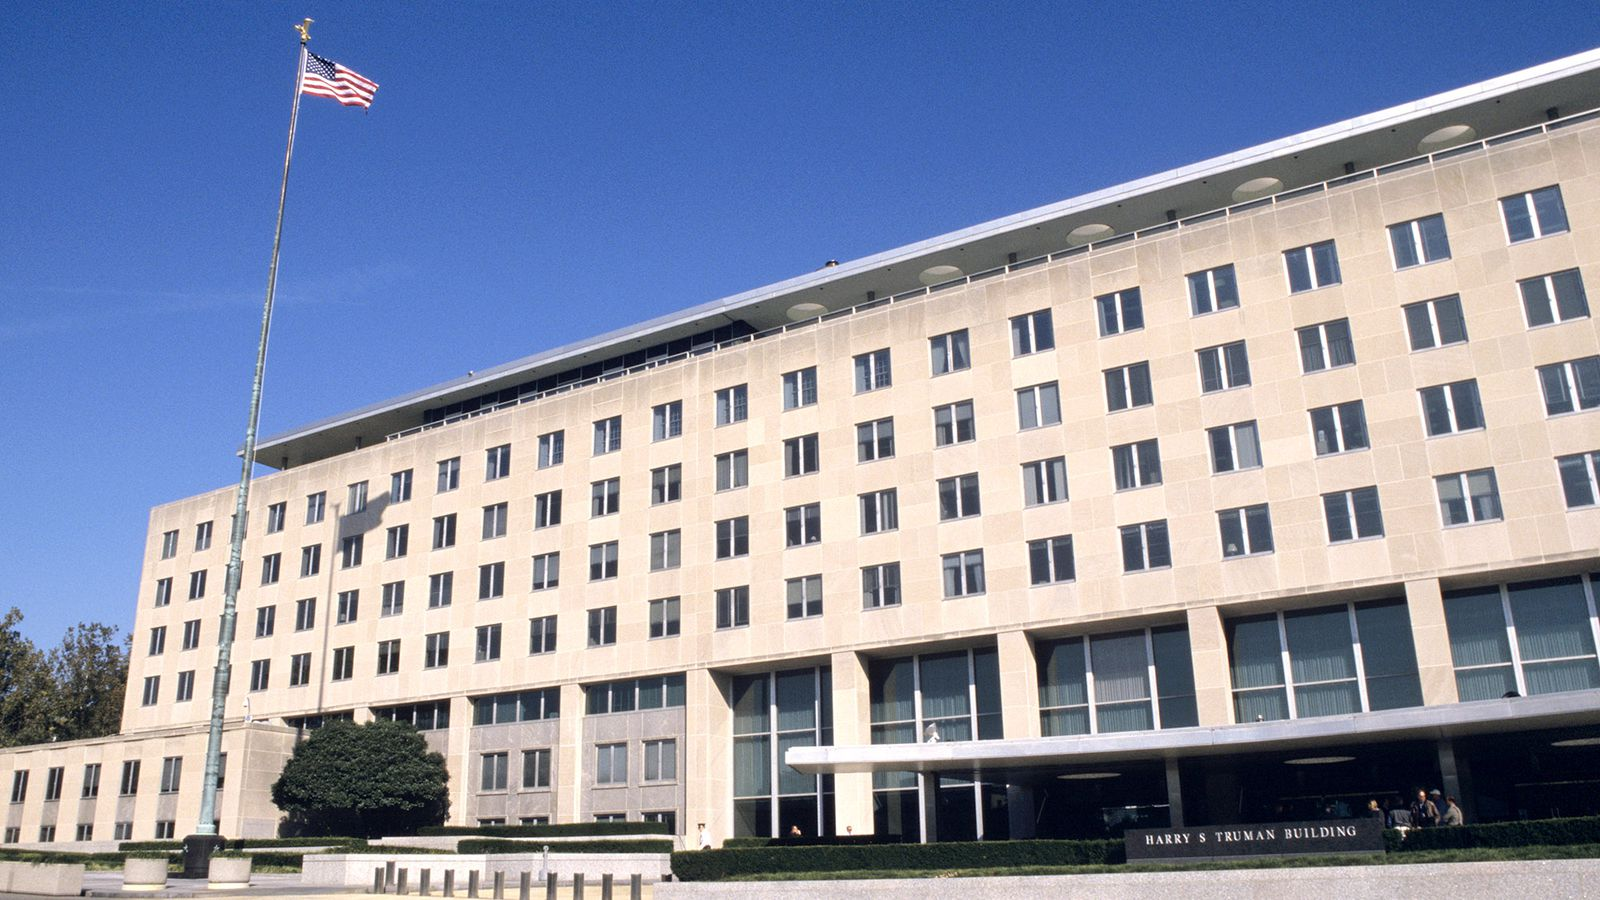 1600-jpg.35198_Authorities Struggling To Keep Squatters Out Of Empty State Department_Squatting_Squat the Planet_7:20 AM